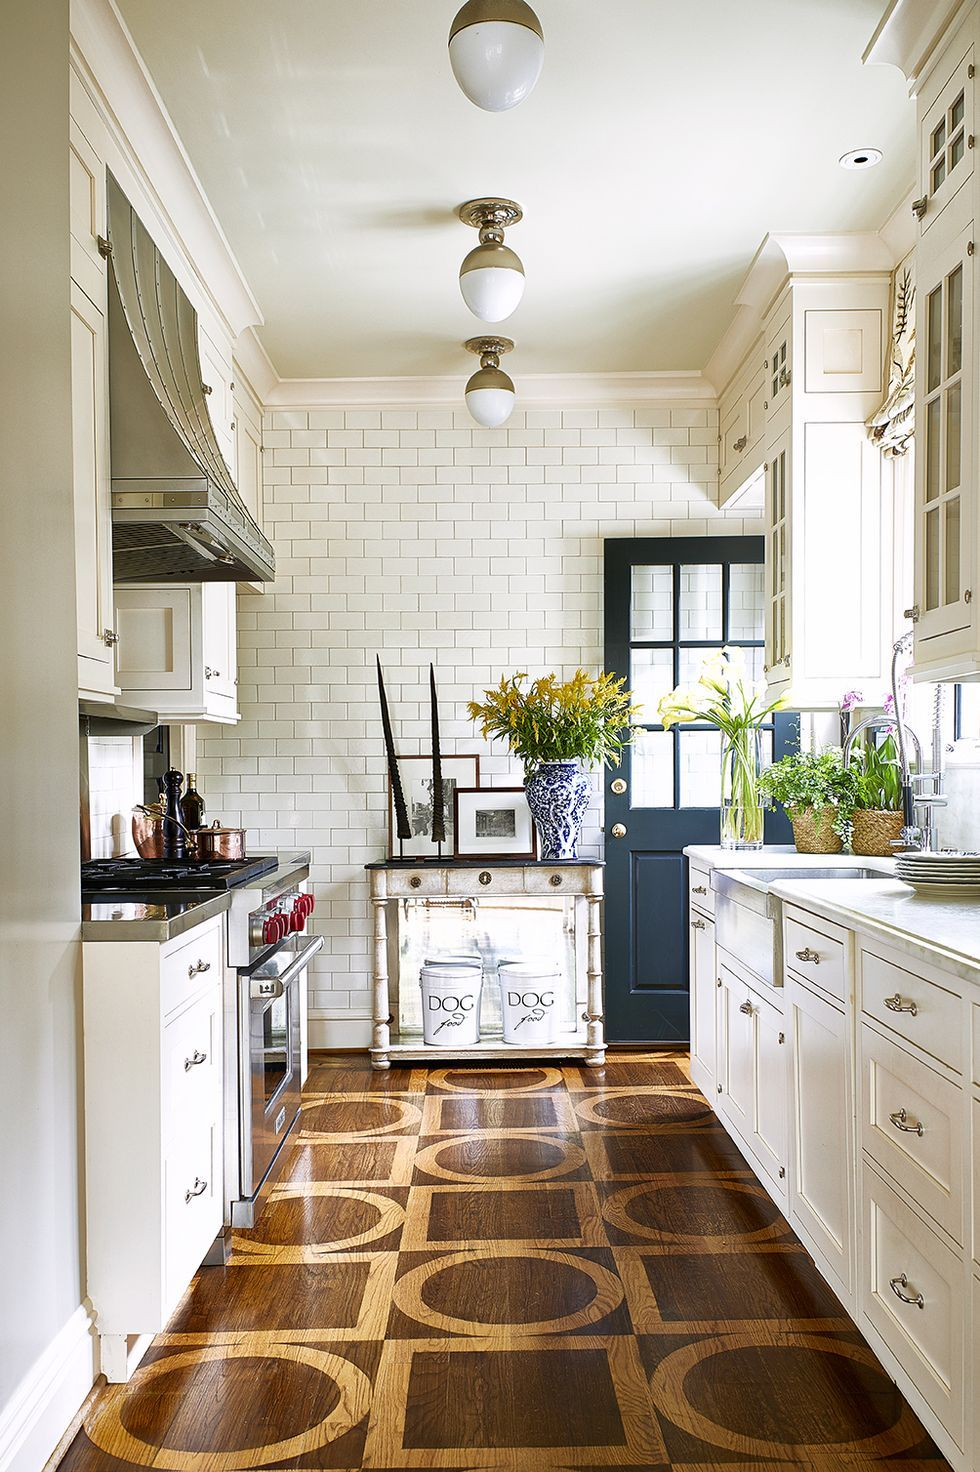 These CountryChic Kitchens Will Make You Feel Like You're